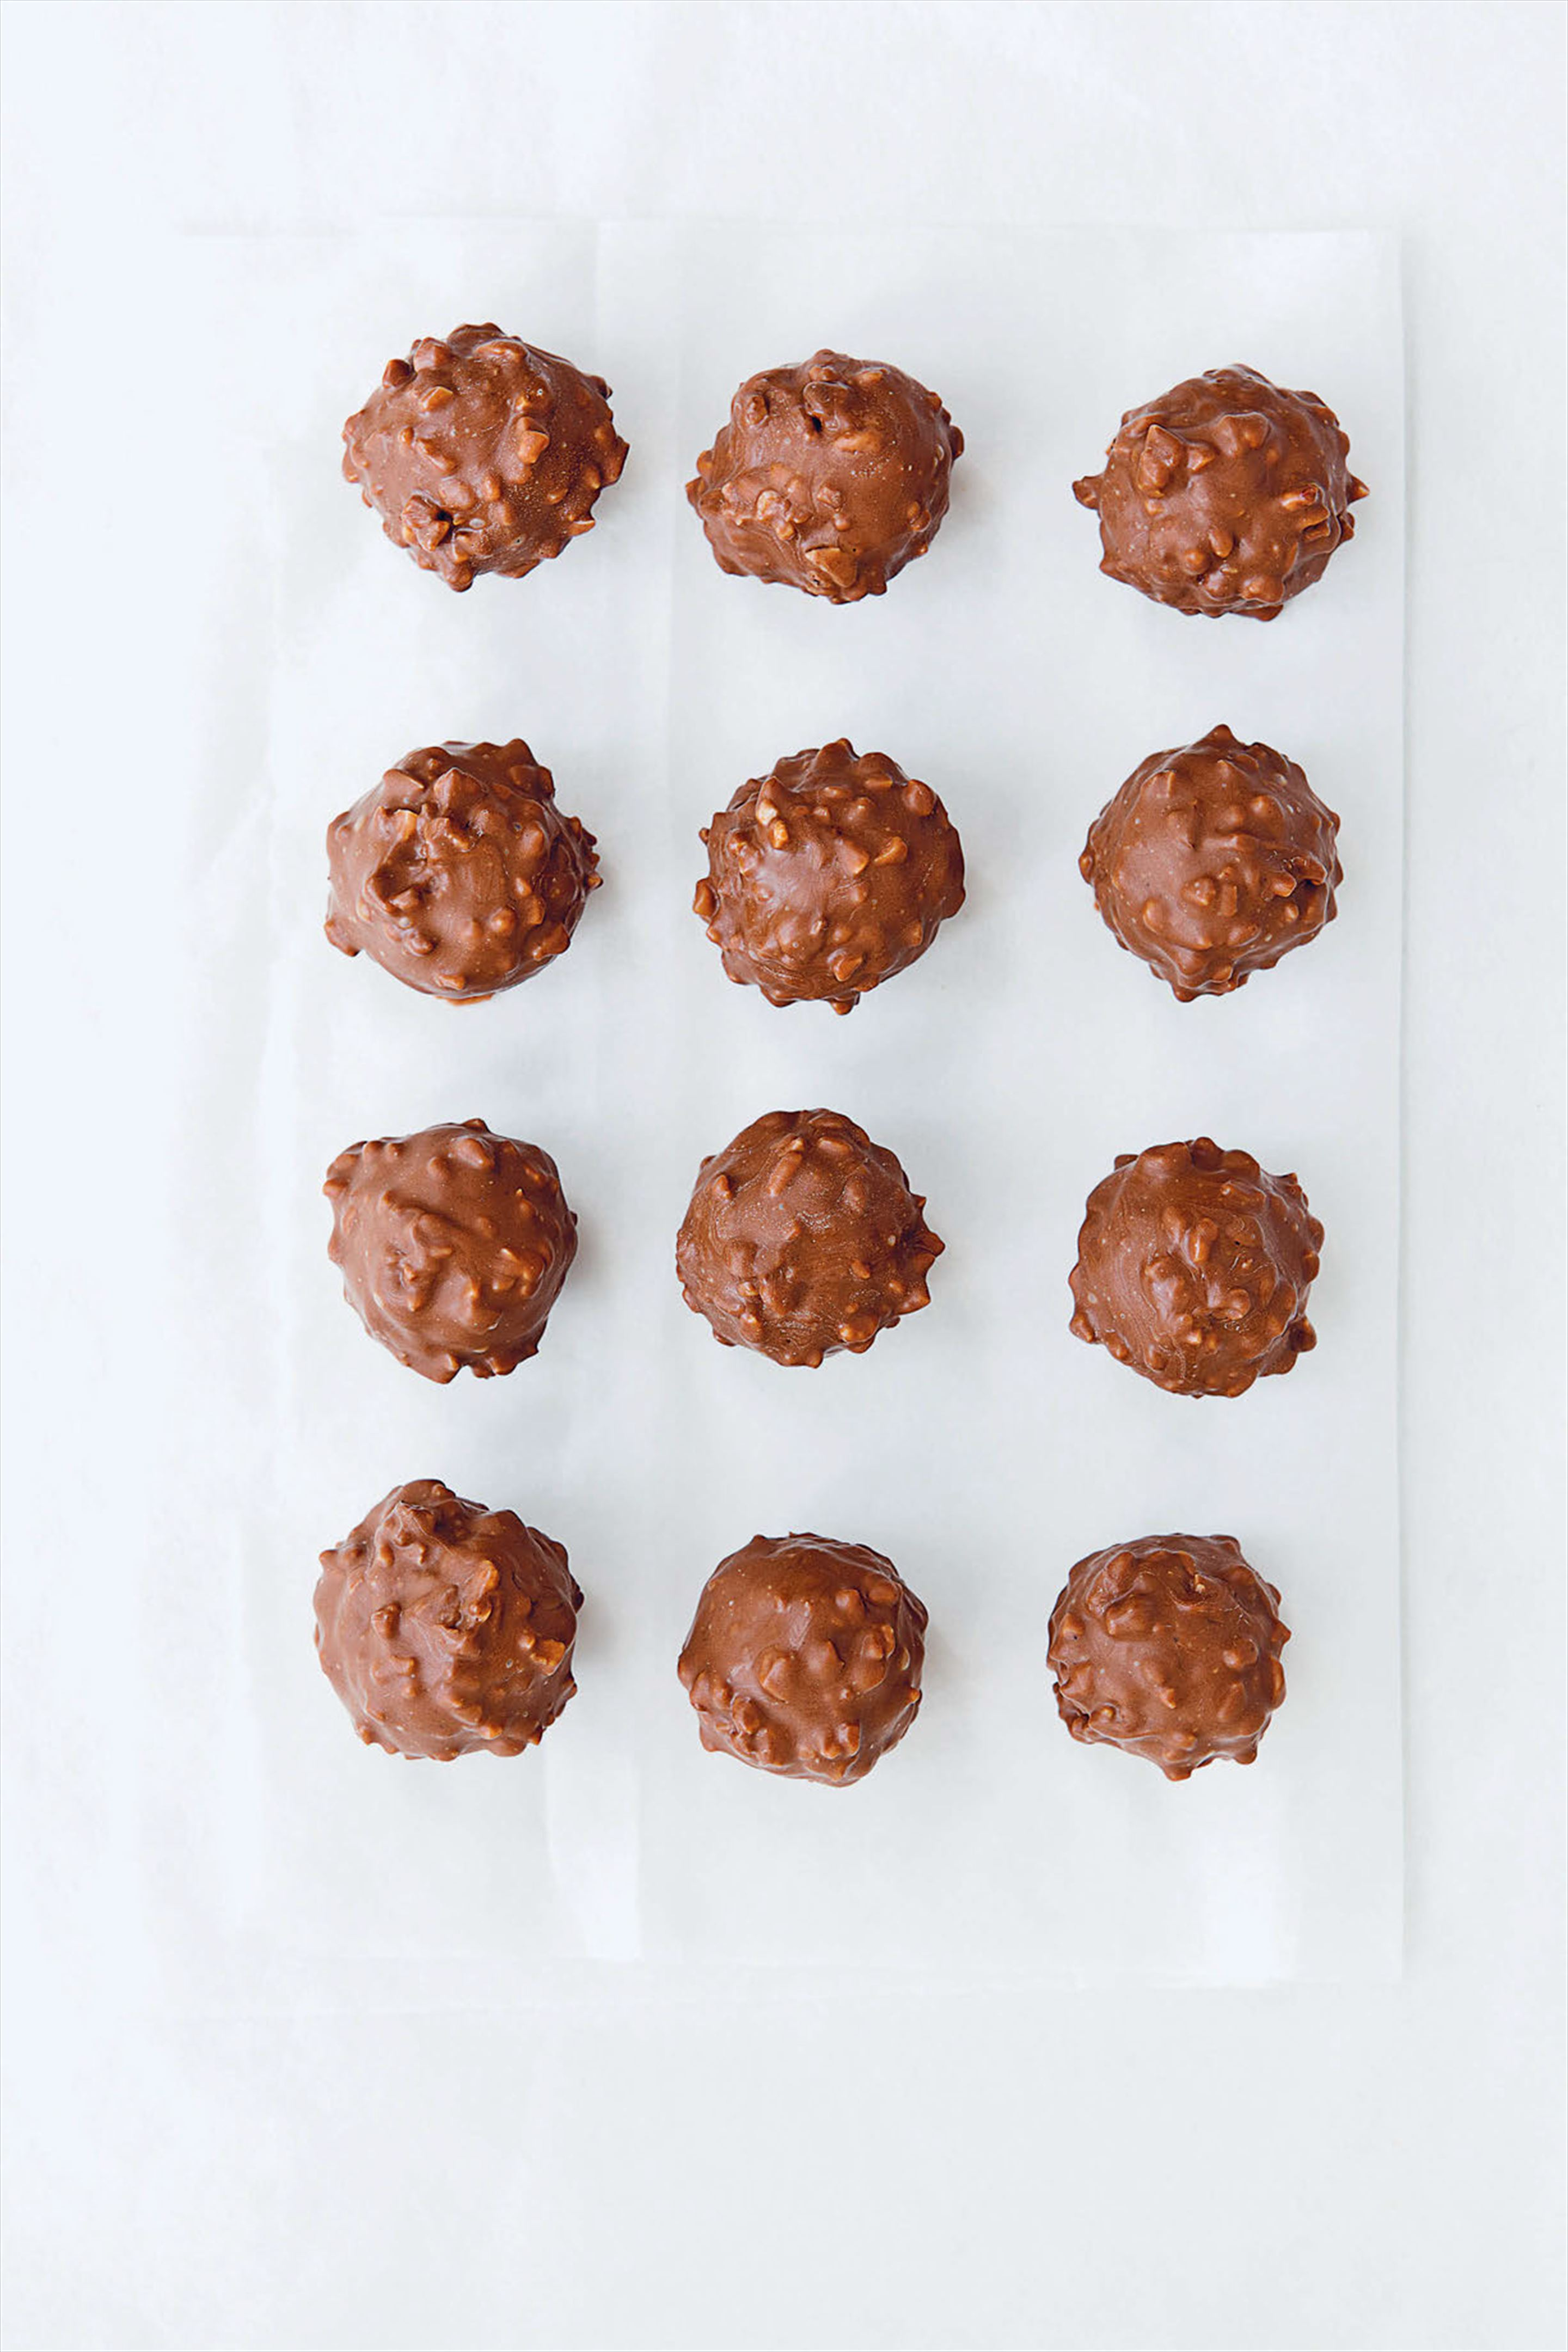 Hazelnut, wafer and ganache chocolate balls